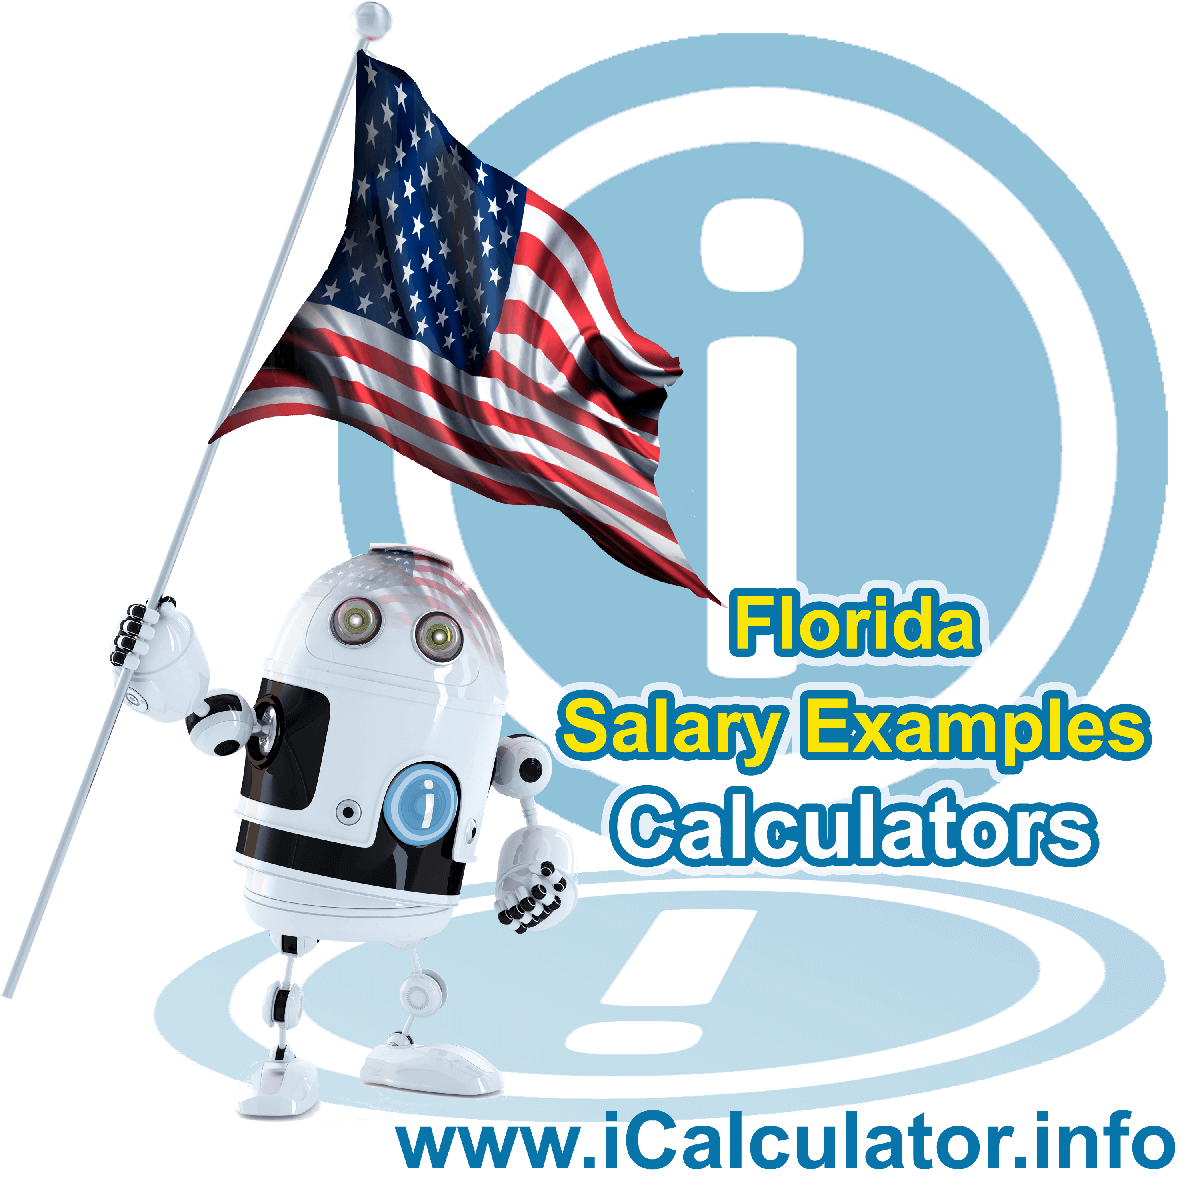 Florida Salary Example for $20,000.00 in 2020 | iCalculator | $20,000.00 salary example for employee and employer paying Florida State tincome taxes. Detailed salary after tax calculation including Florida State Tax, Federal State Tax, Medicare Deductions, Social Security, Capital Gains and other income tax and salary deductions complete with supporting Florida state tax tables